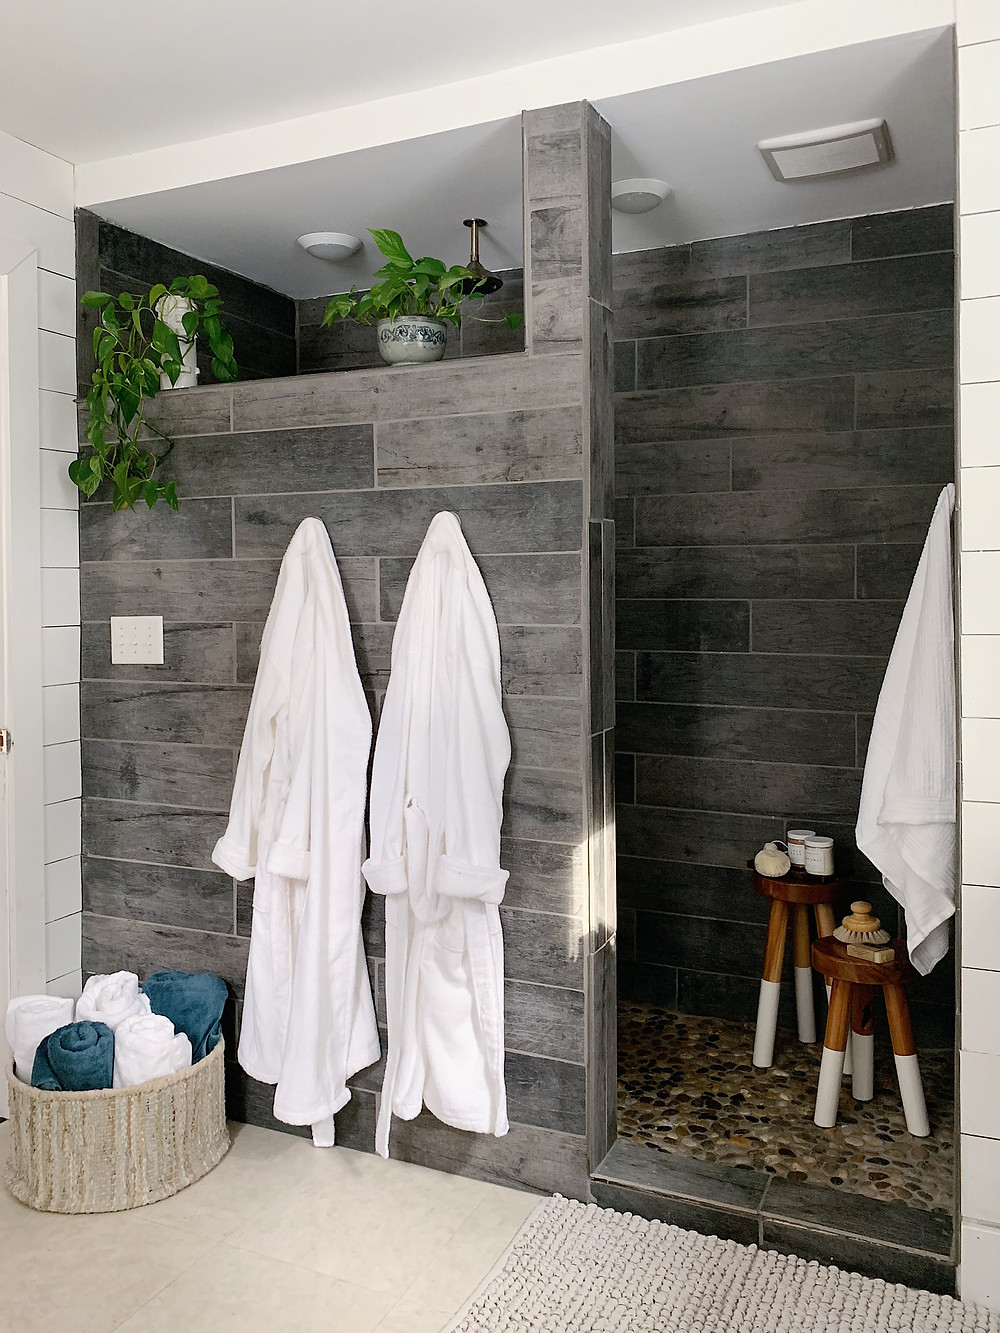 plant in the shower, wood tile shower